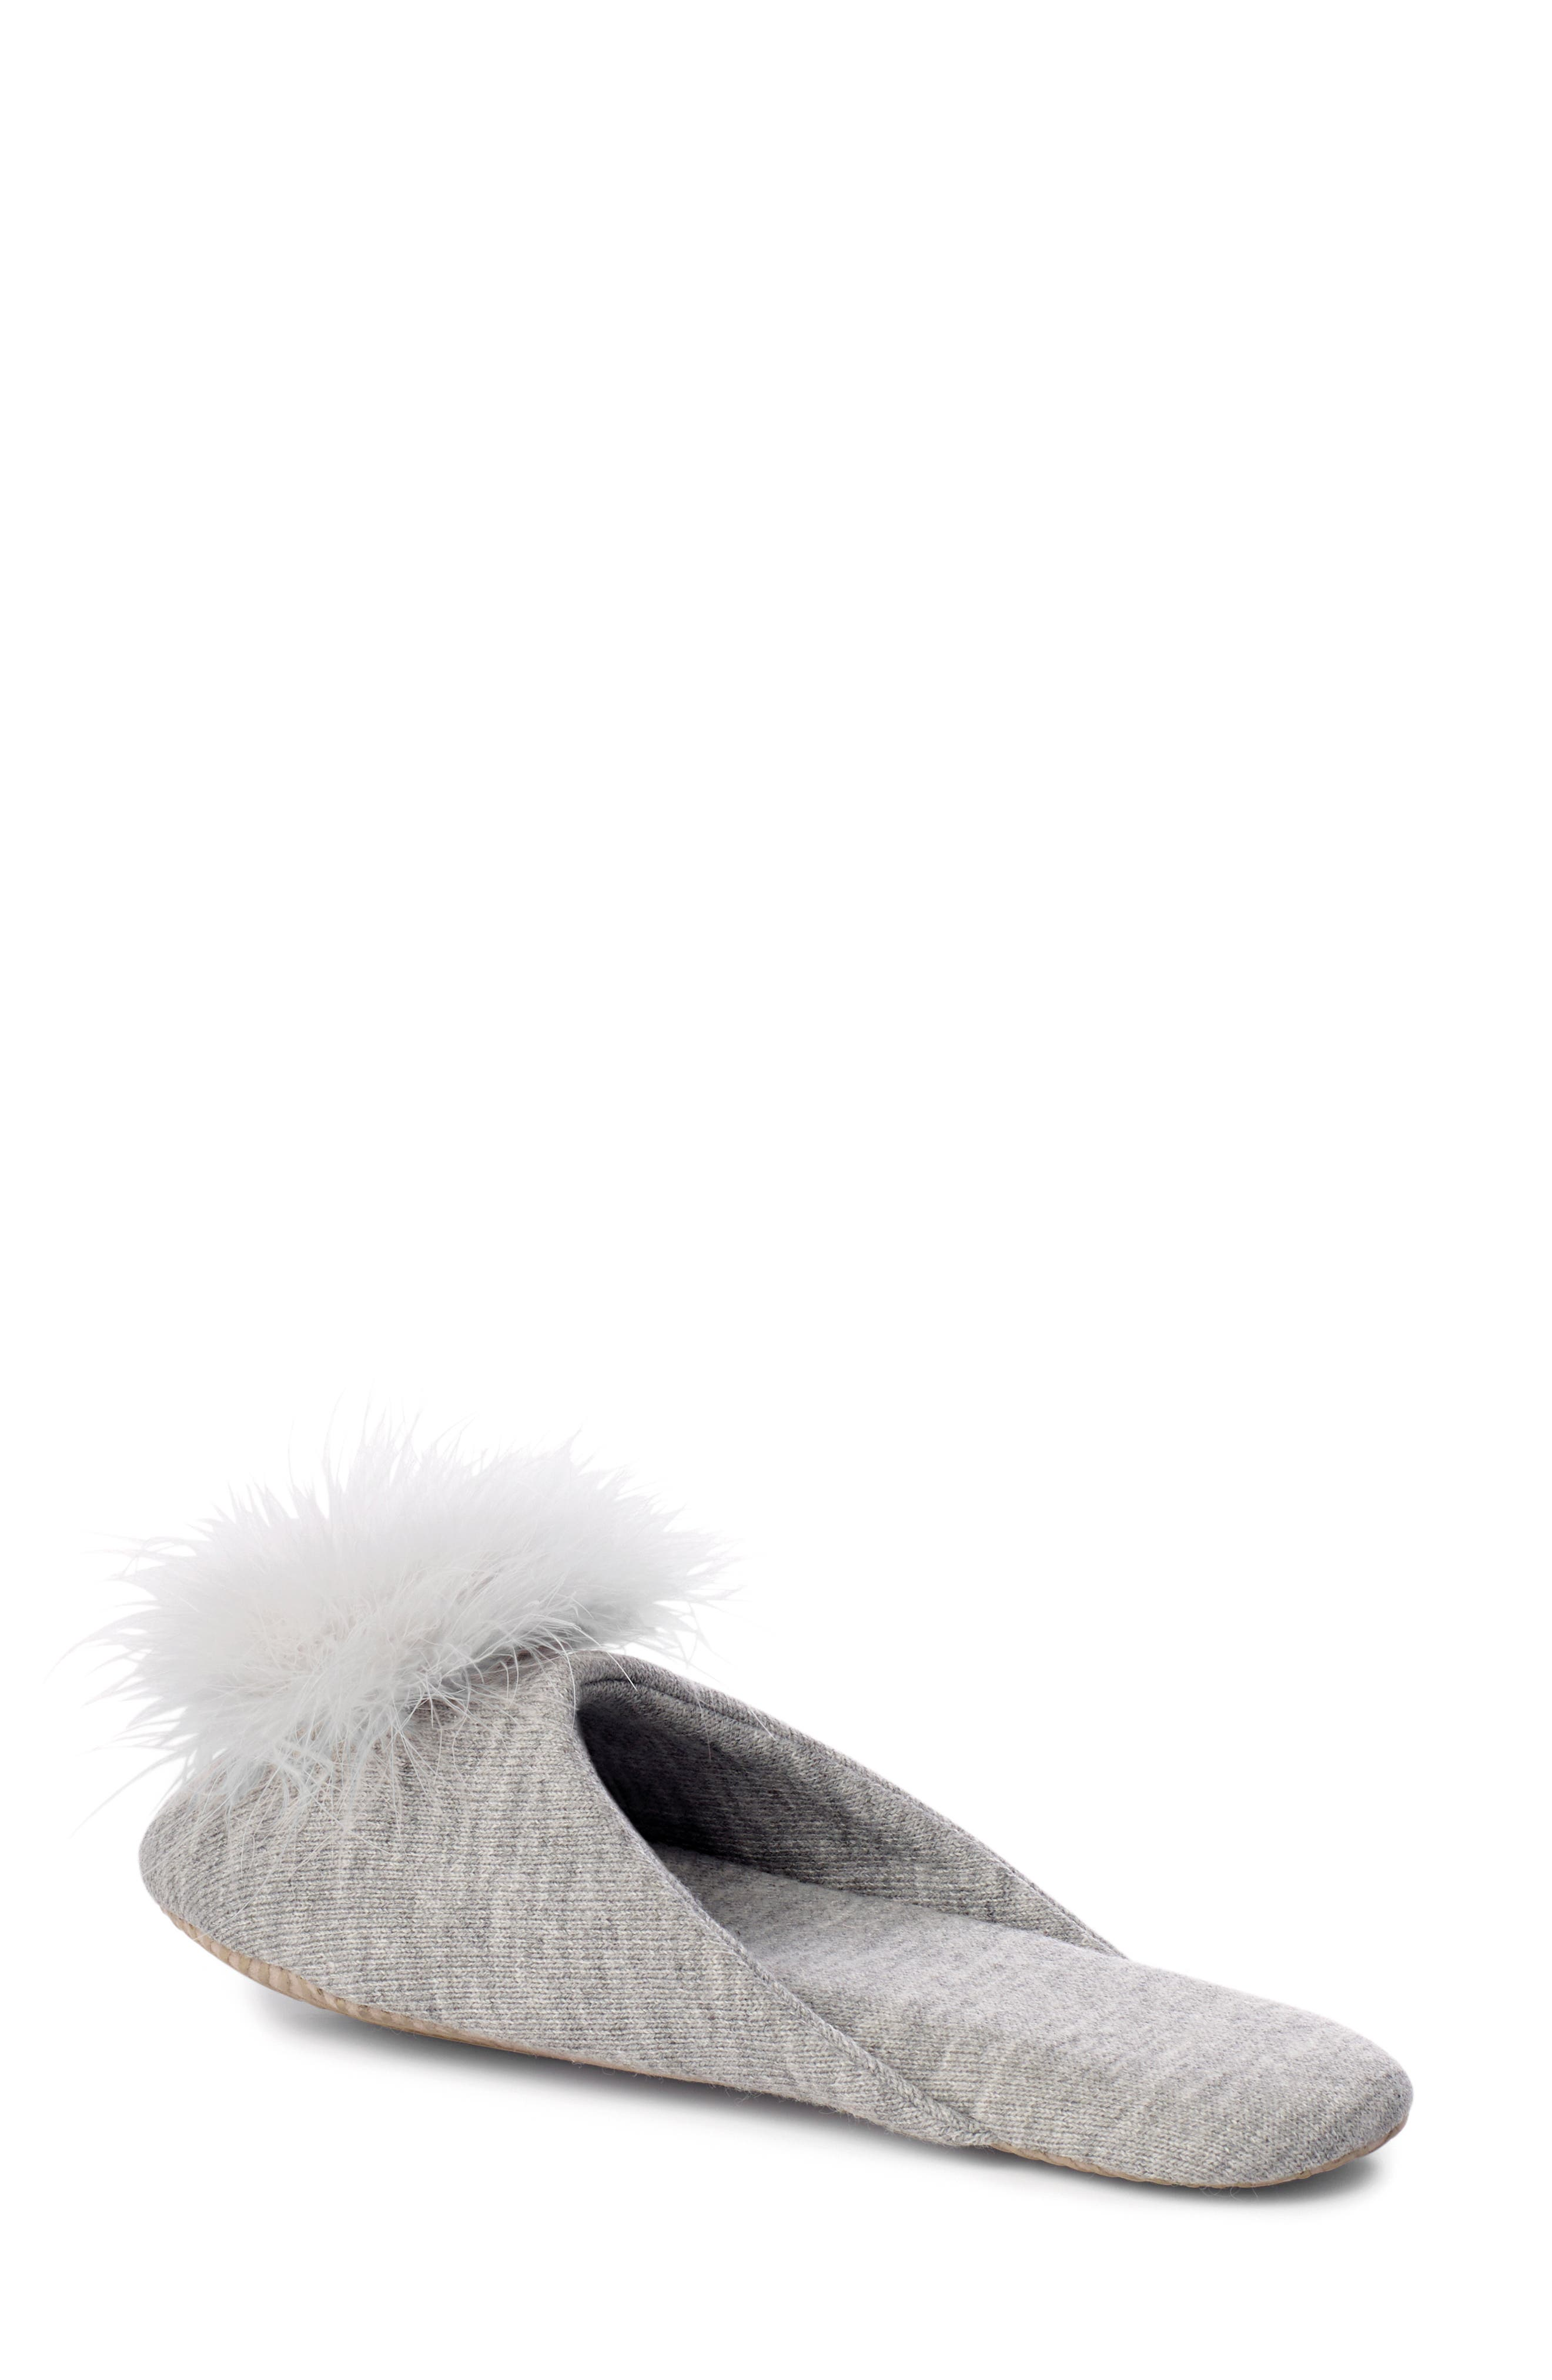 Feather Pompom Mule Slipper,                             Alternate thumbnail 2, color,                             PALE GREY HEATHER